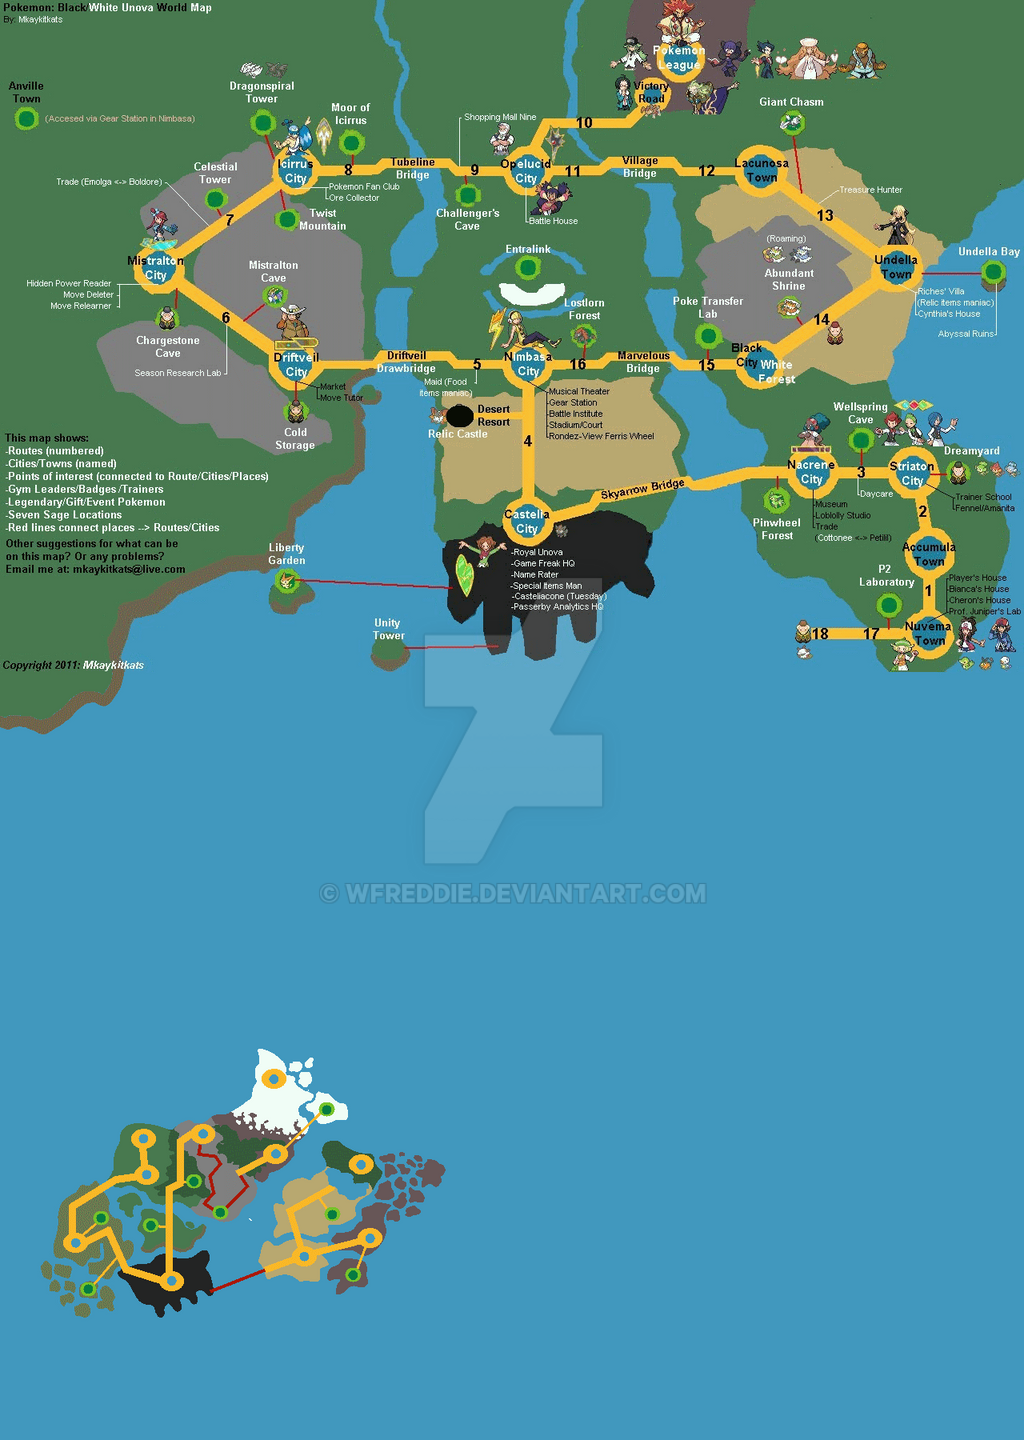 Pokemon World Map Images Pokemon Images